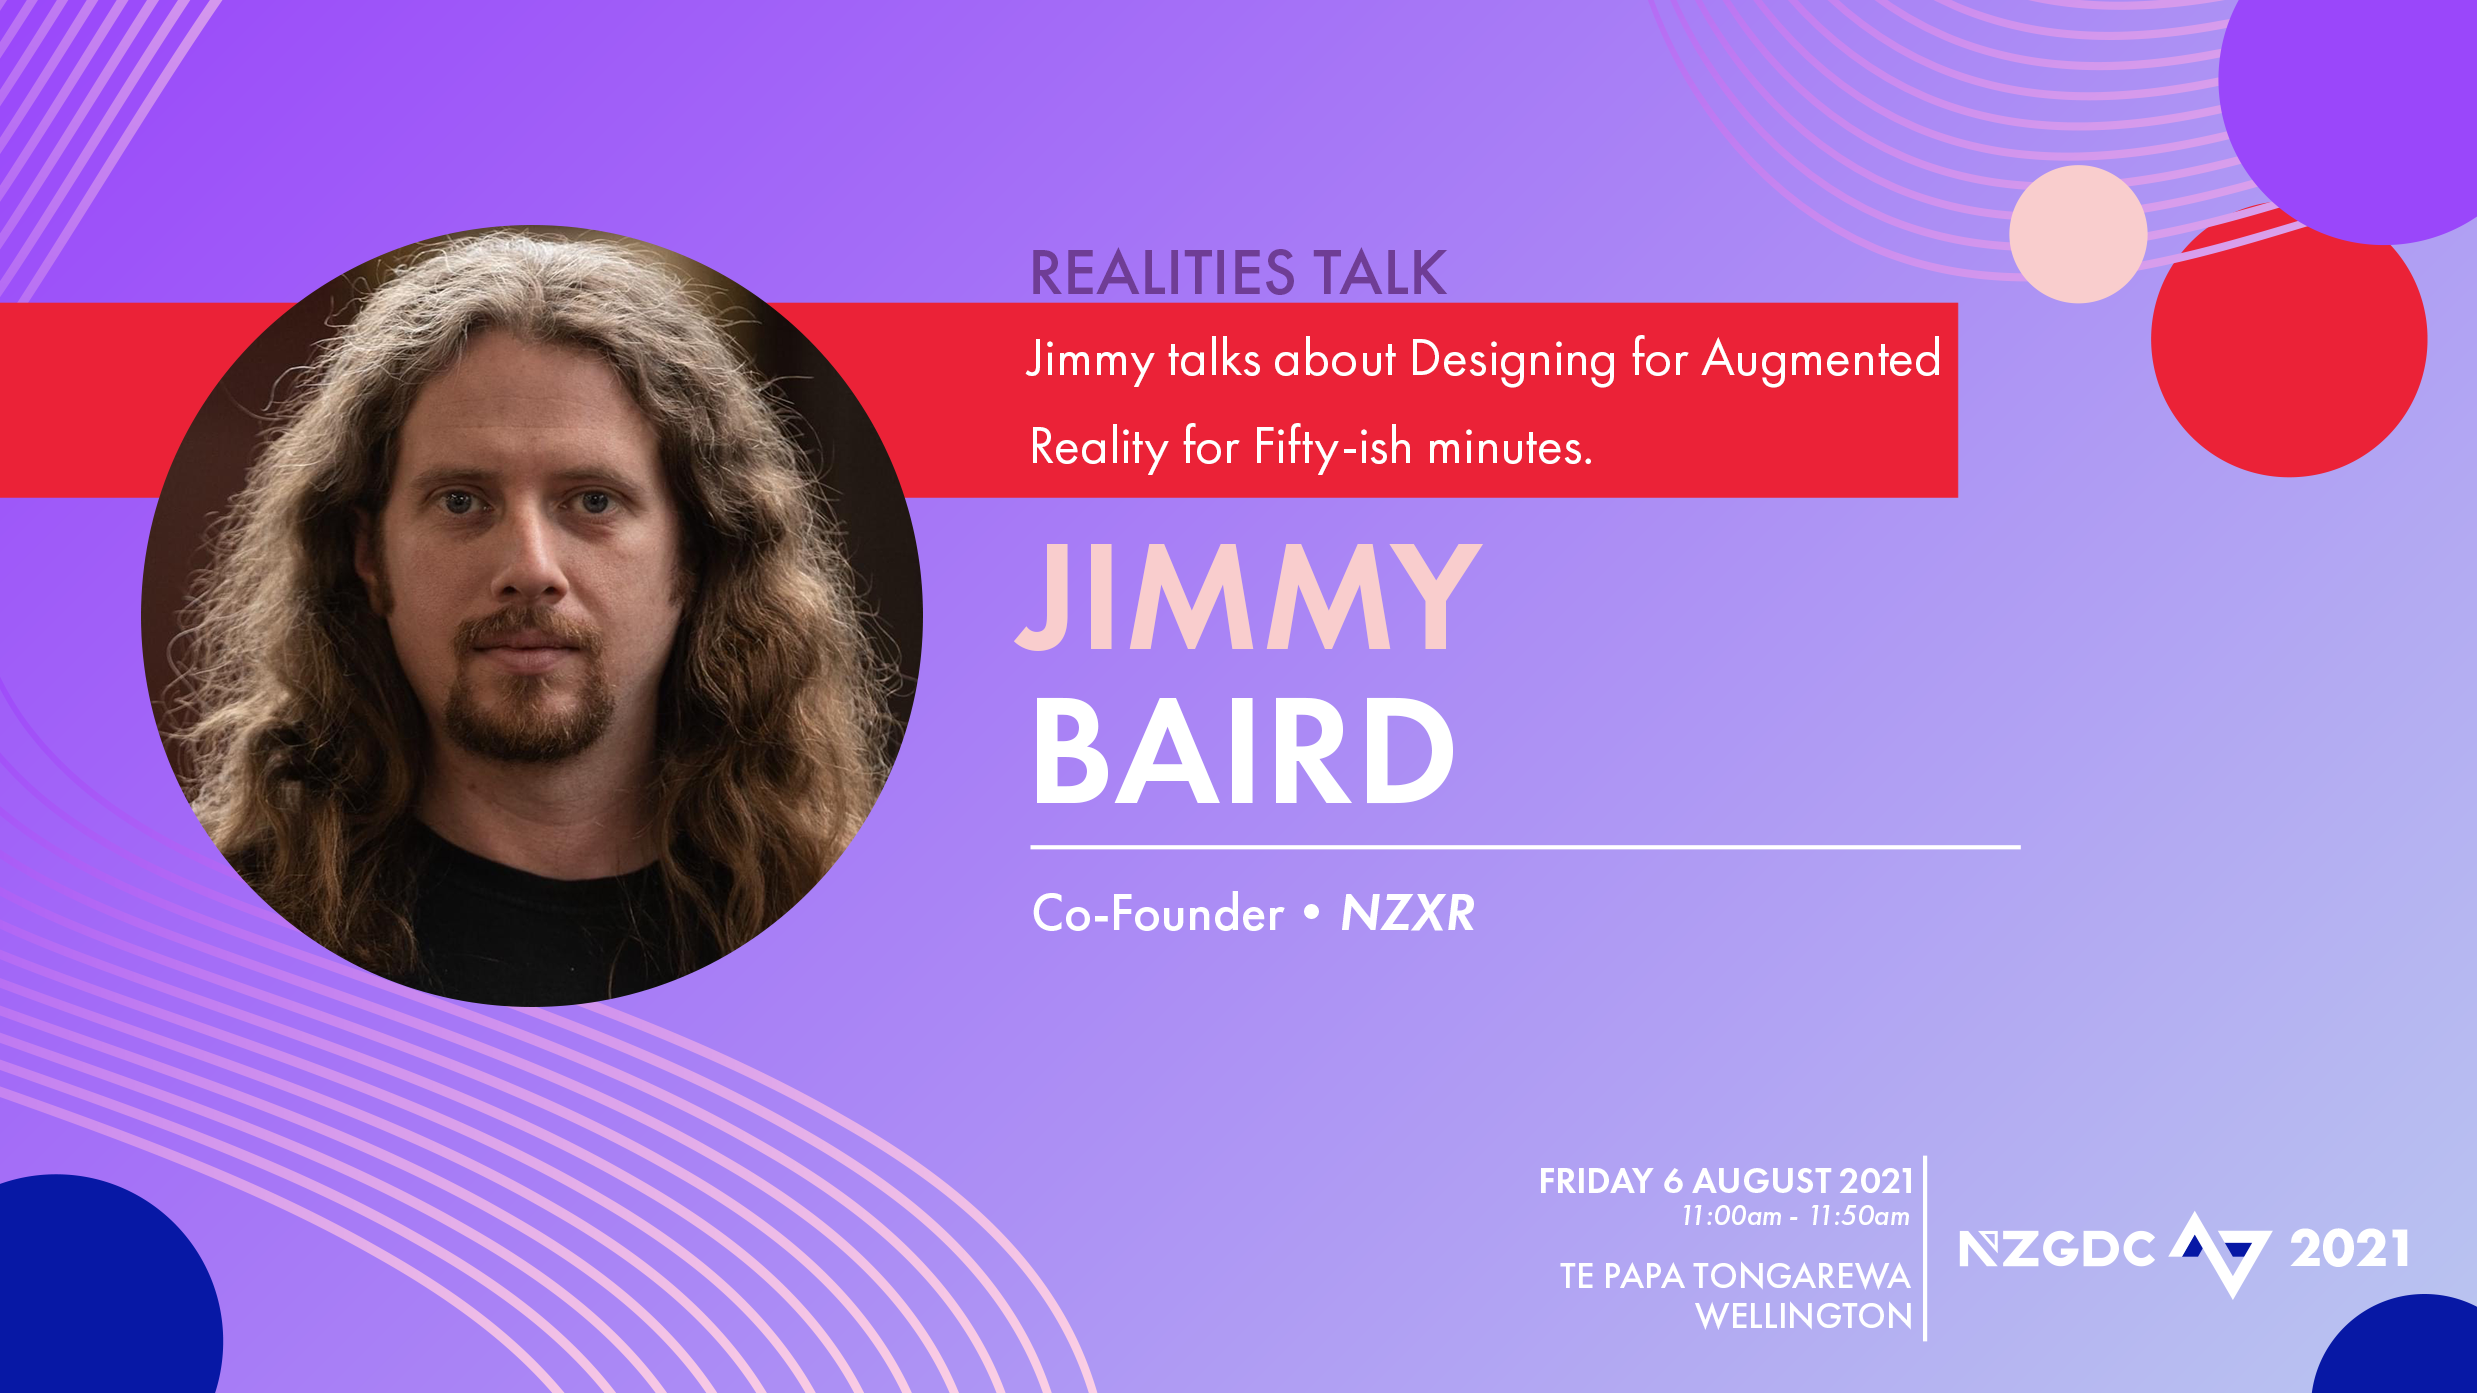 Jimmy Talks About Designing for Augmented Reality for Fifty-ish Minutes.